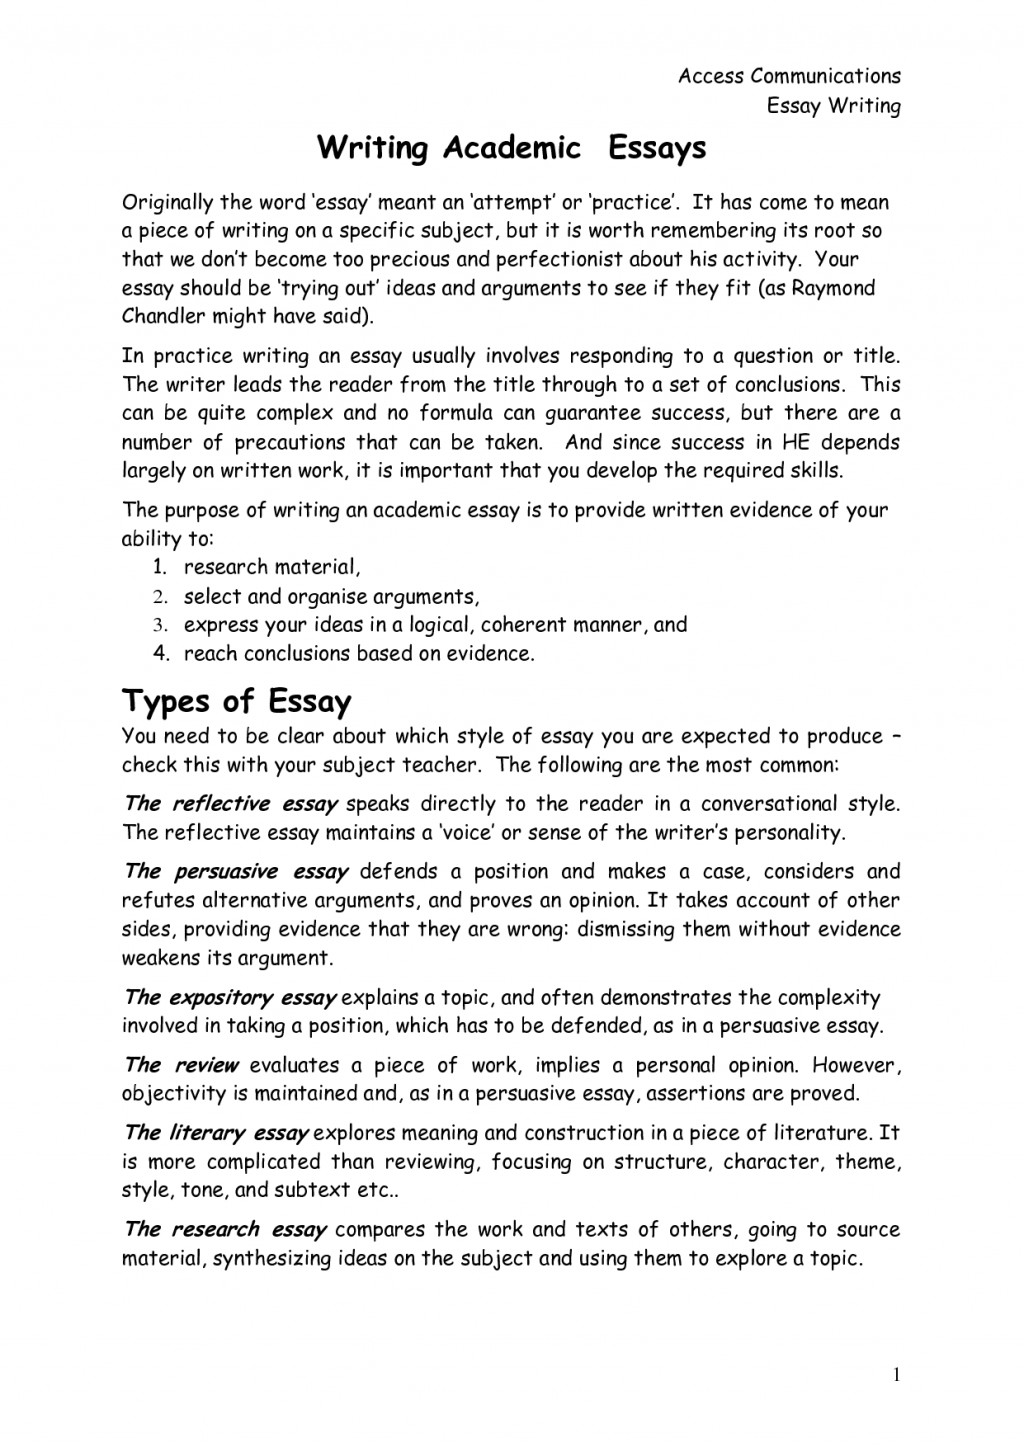 016 Reflective Essay On Academic Writings Beautiful Examples For Middle School Apa High Large